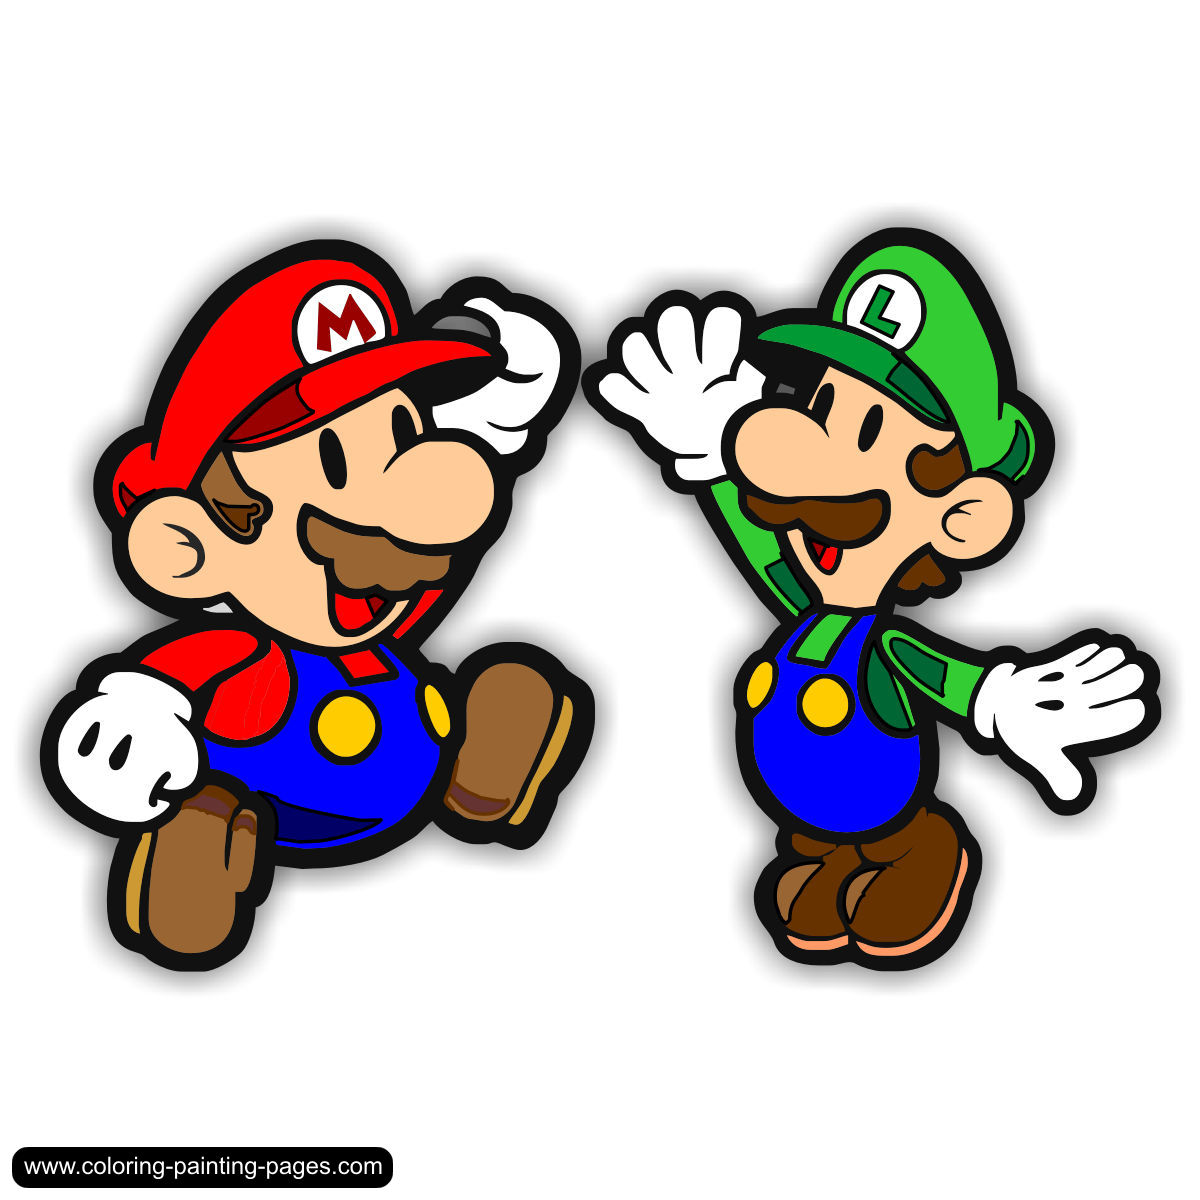 1000+ images about Mario Bros on Pinterest.